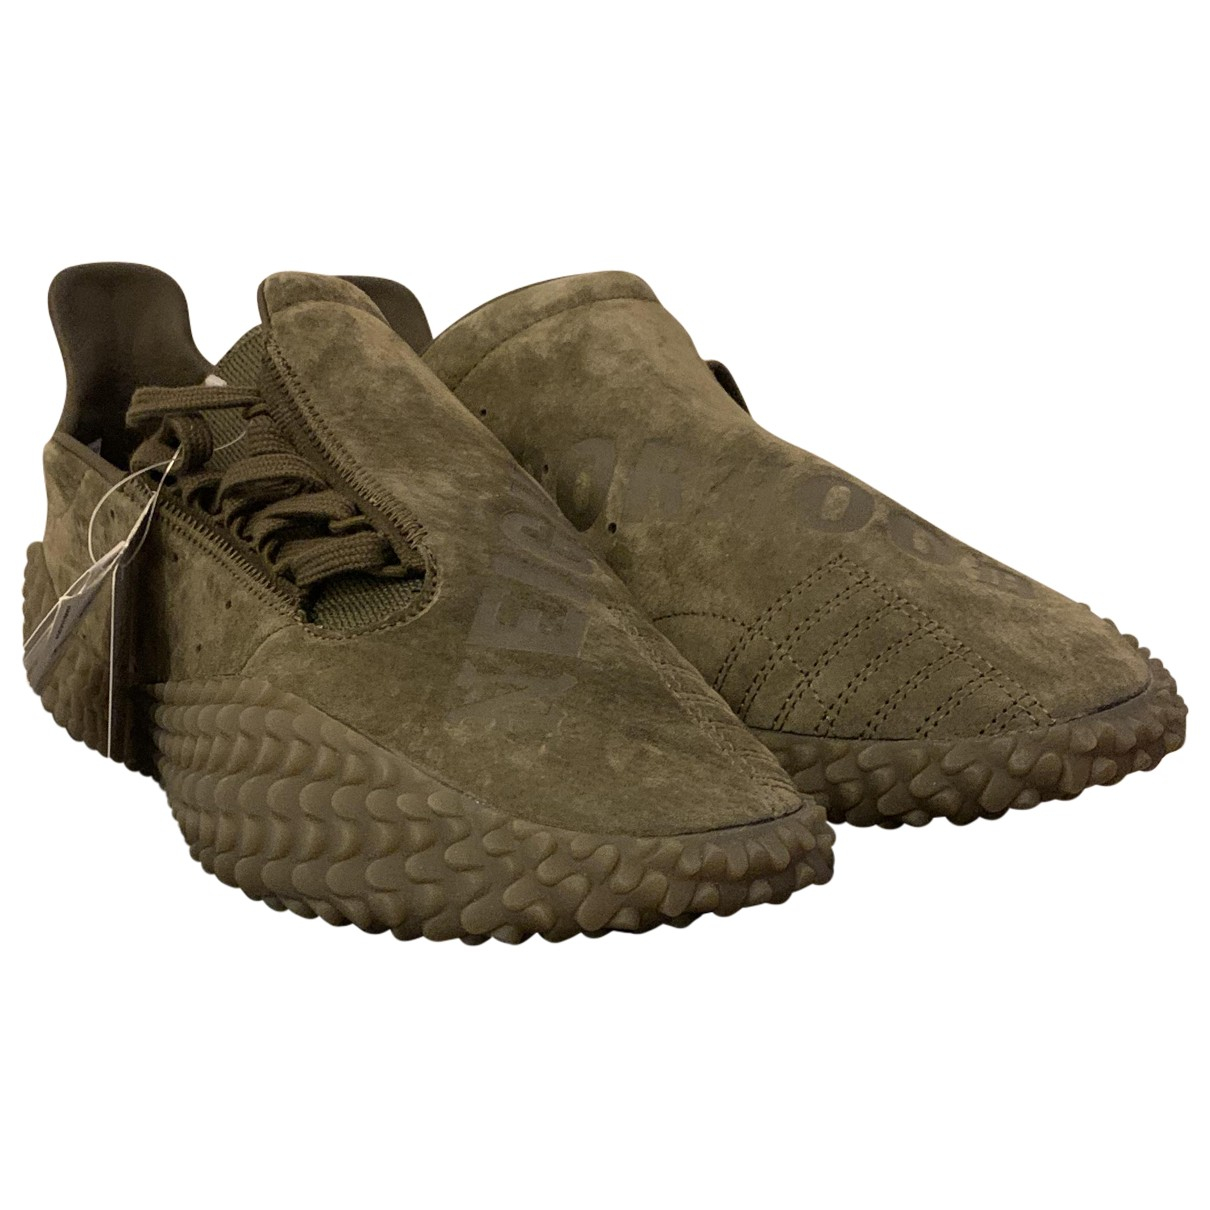 Adidas \N Green Suede Trainers for Men 11.5 UK